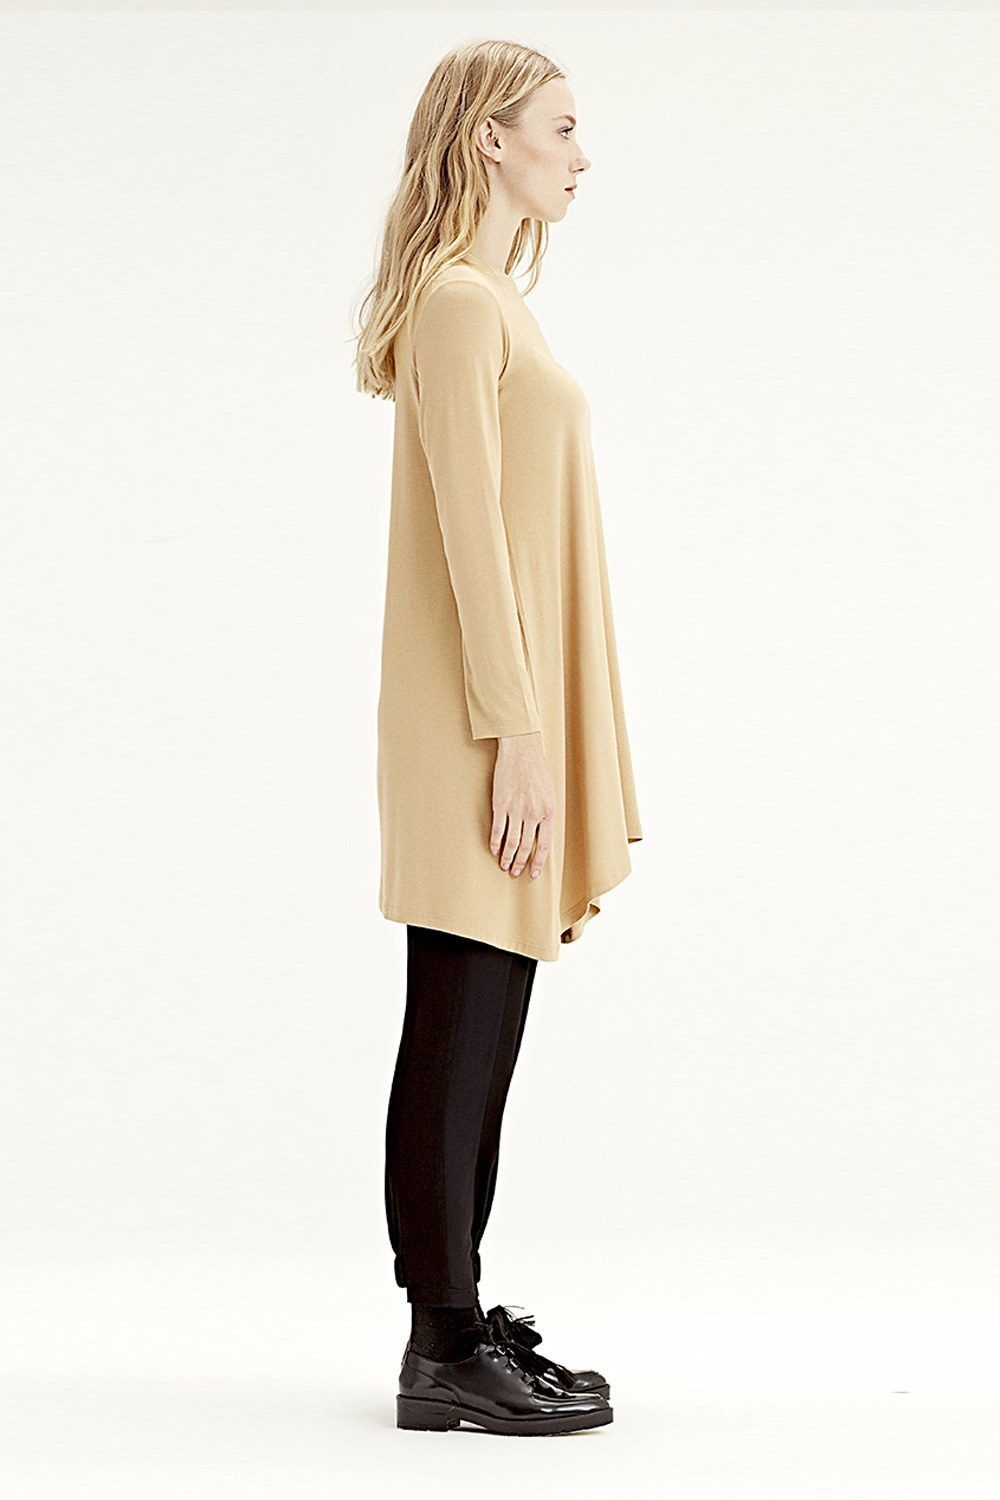 MIZALLE Long-Sleeved Basic Tunic (Mustard) (1)